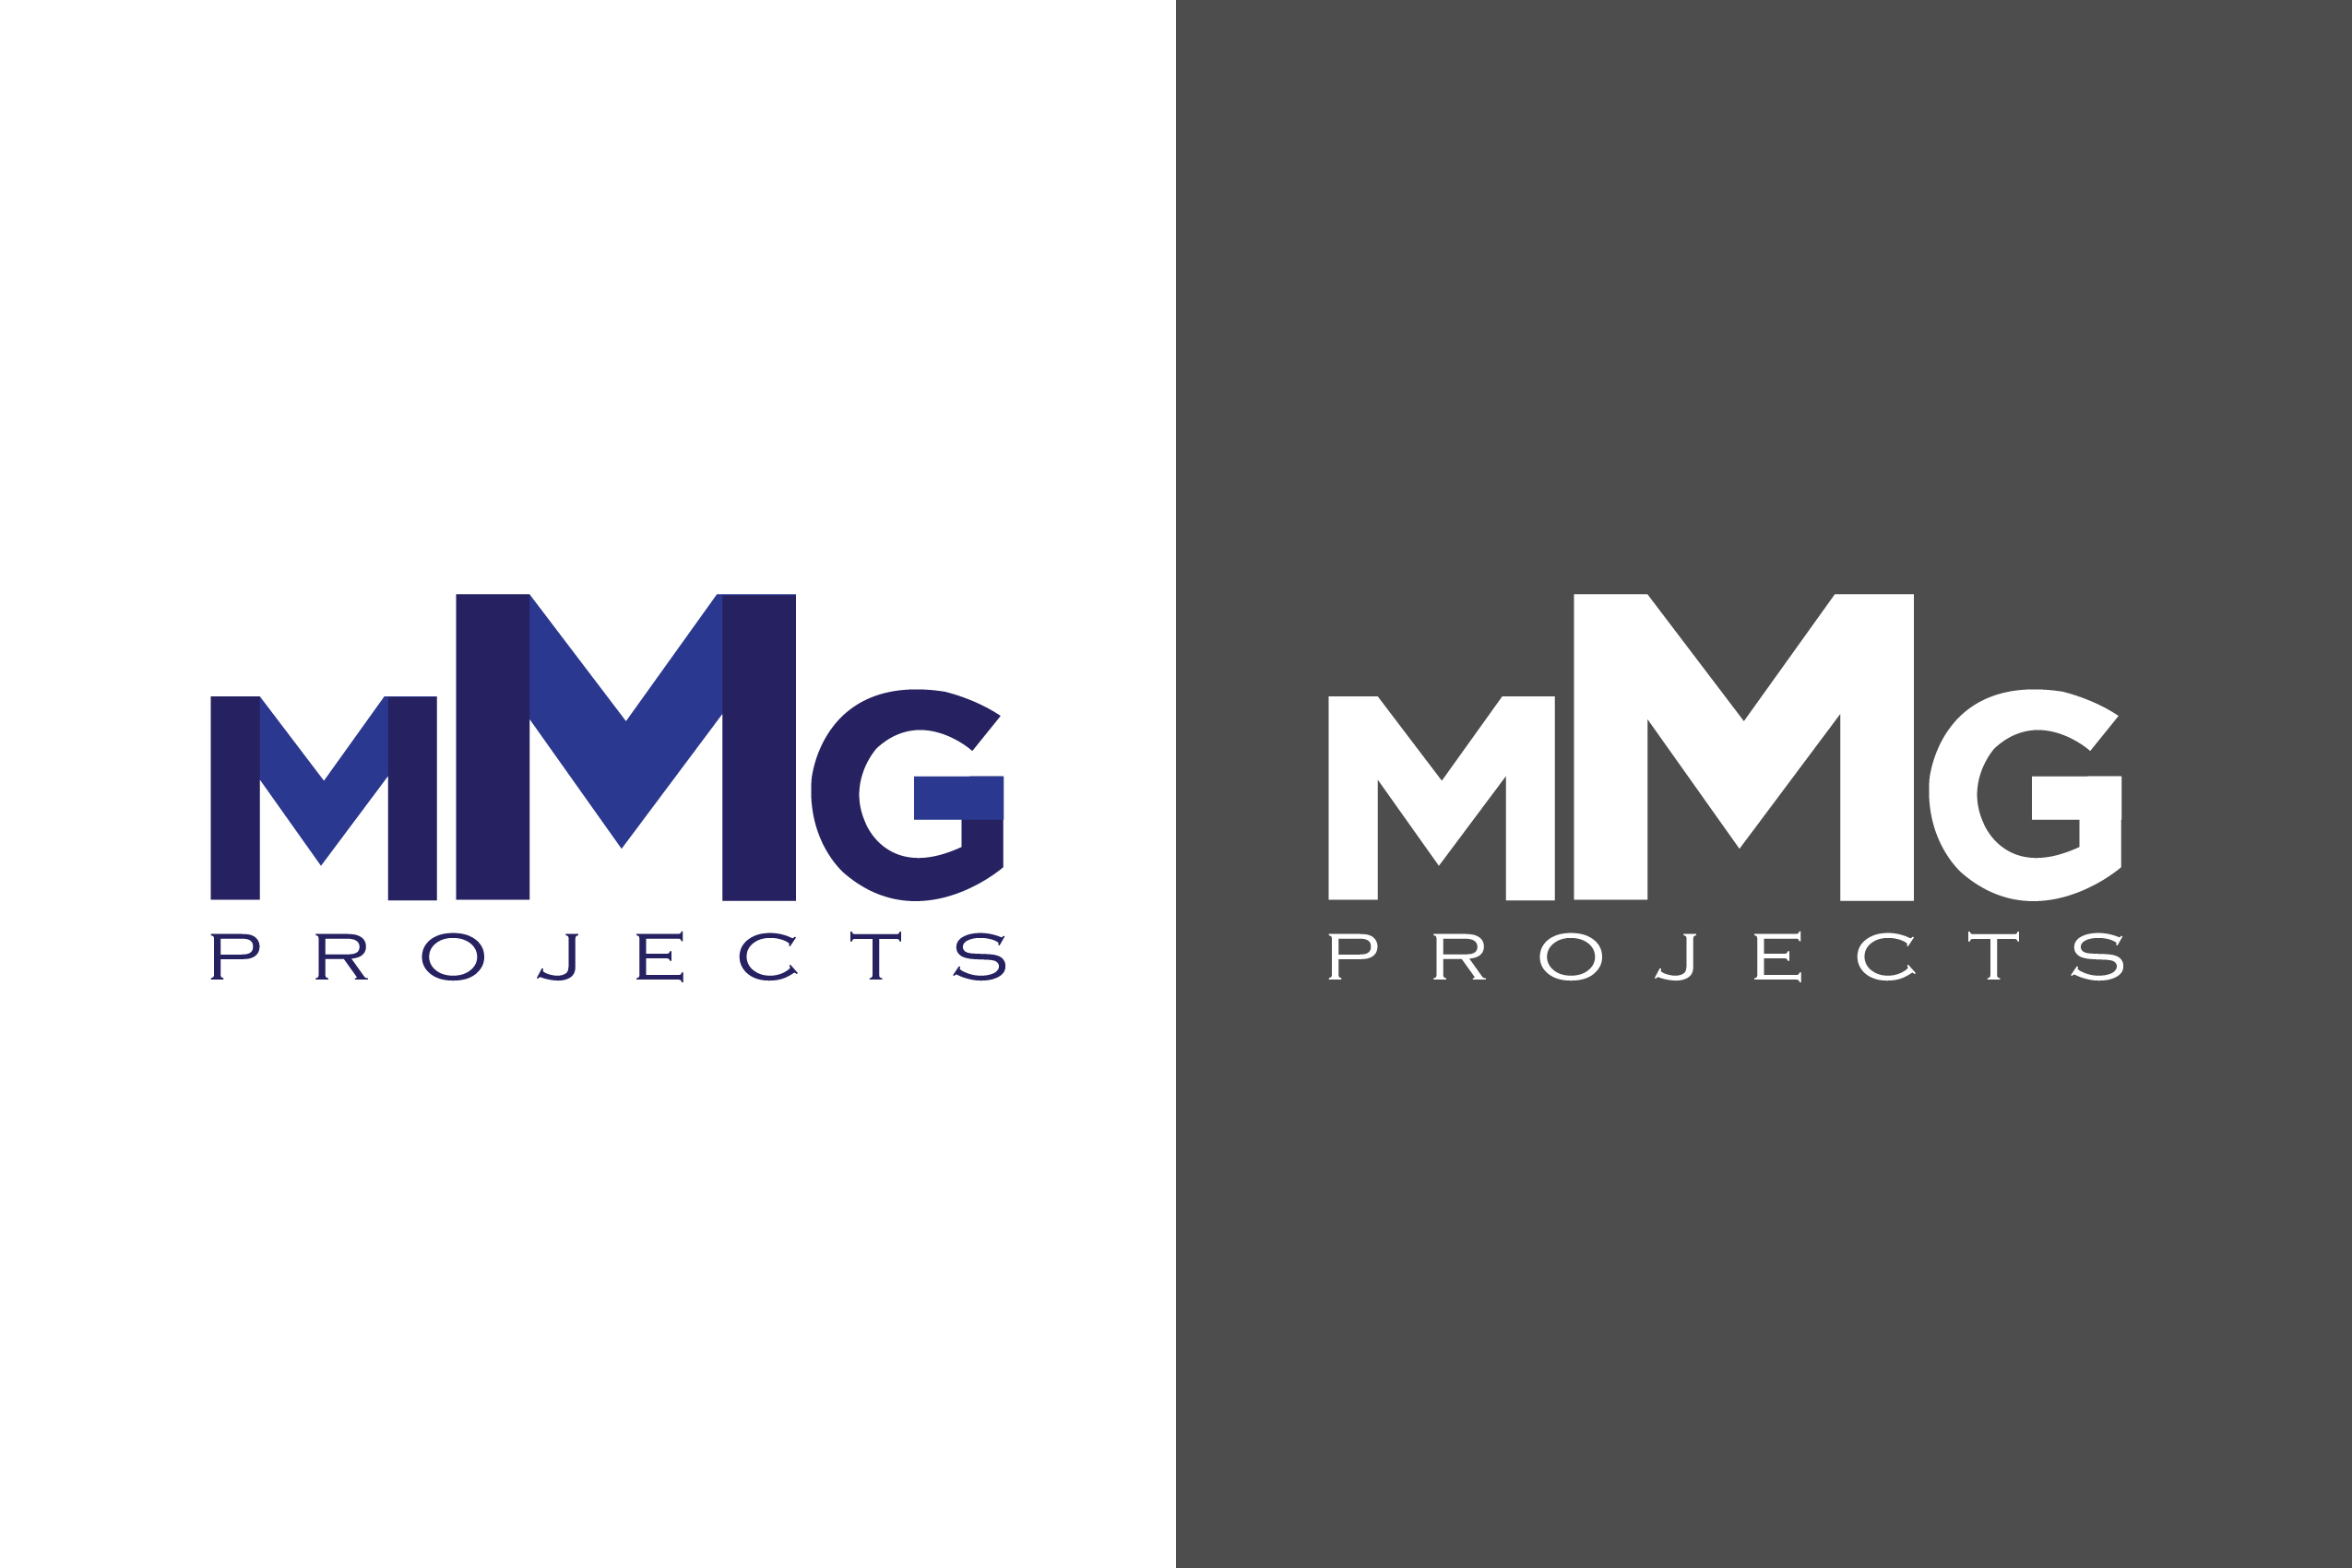 MMG-Projects-Logo